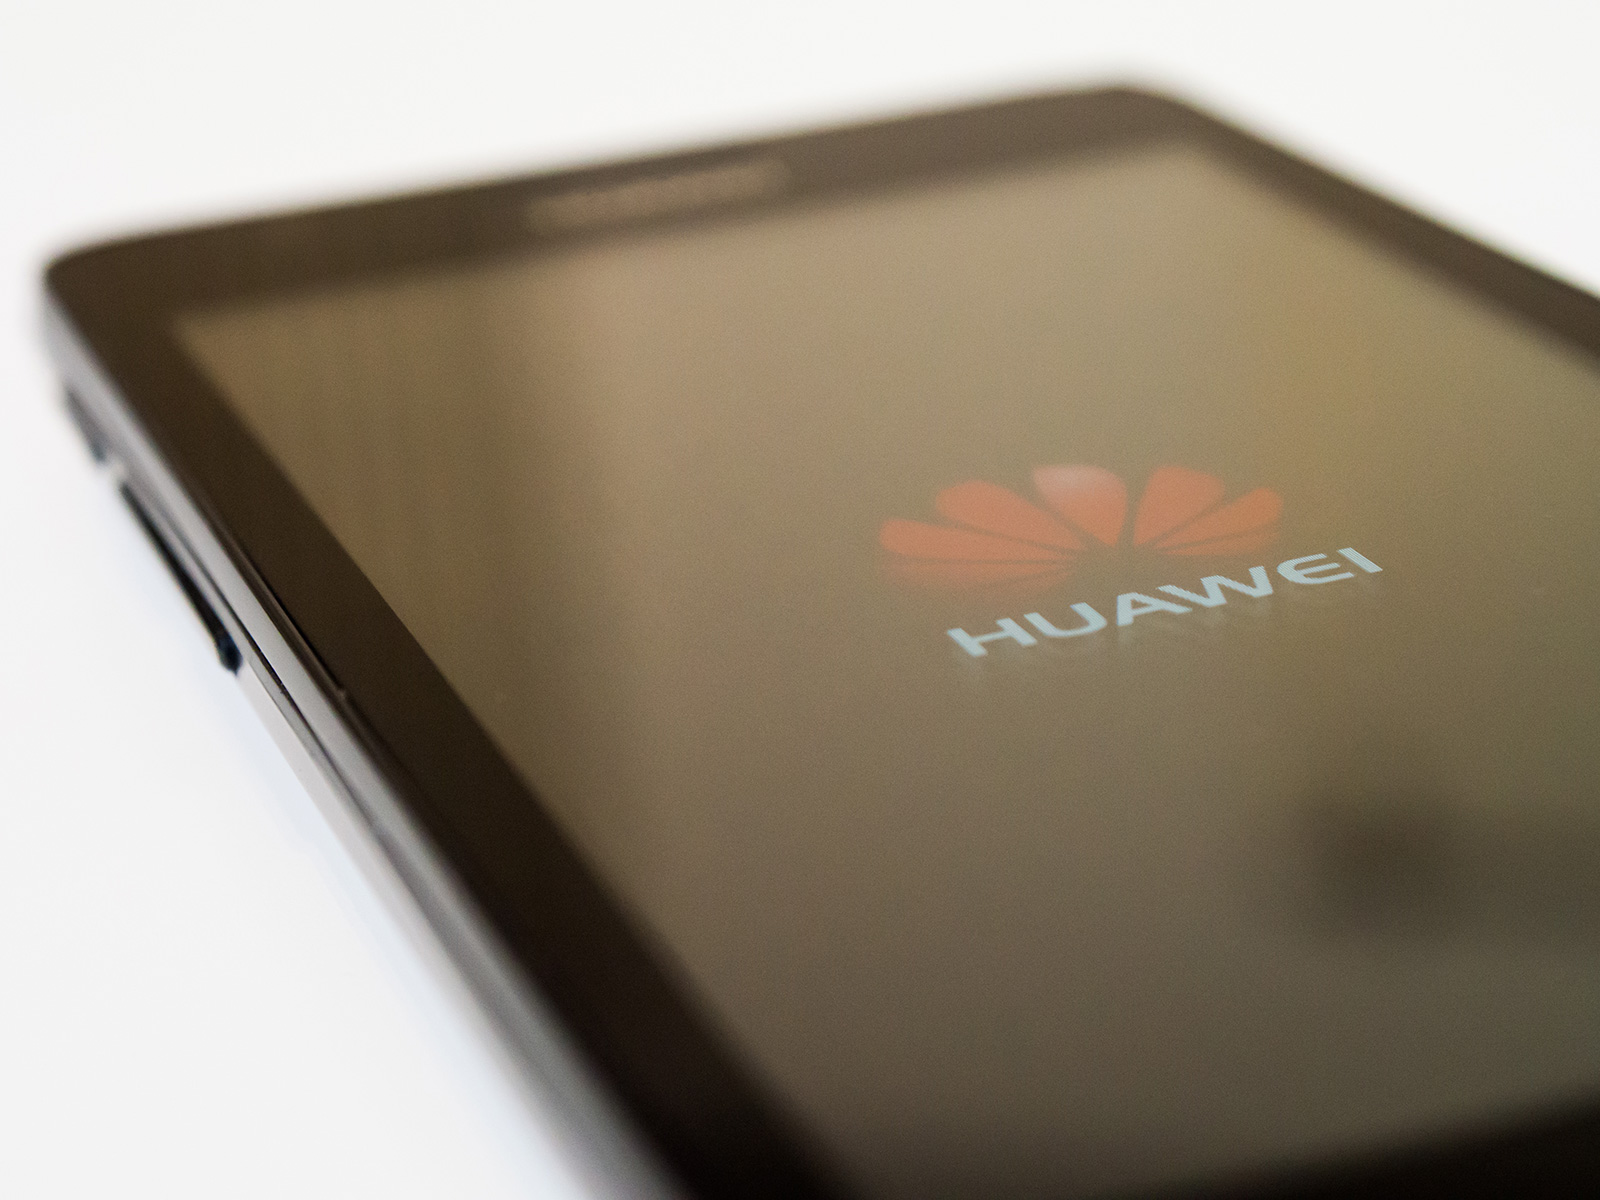 Huawei G510 boot screen